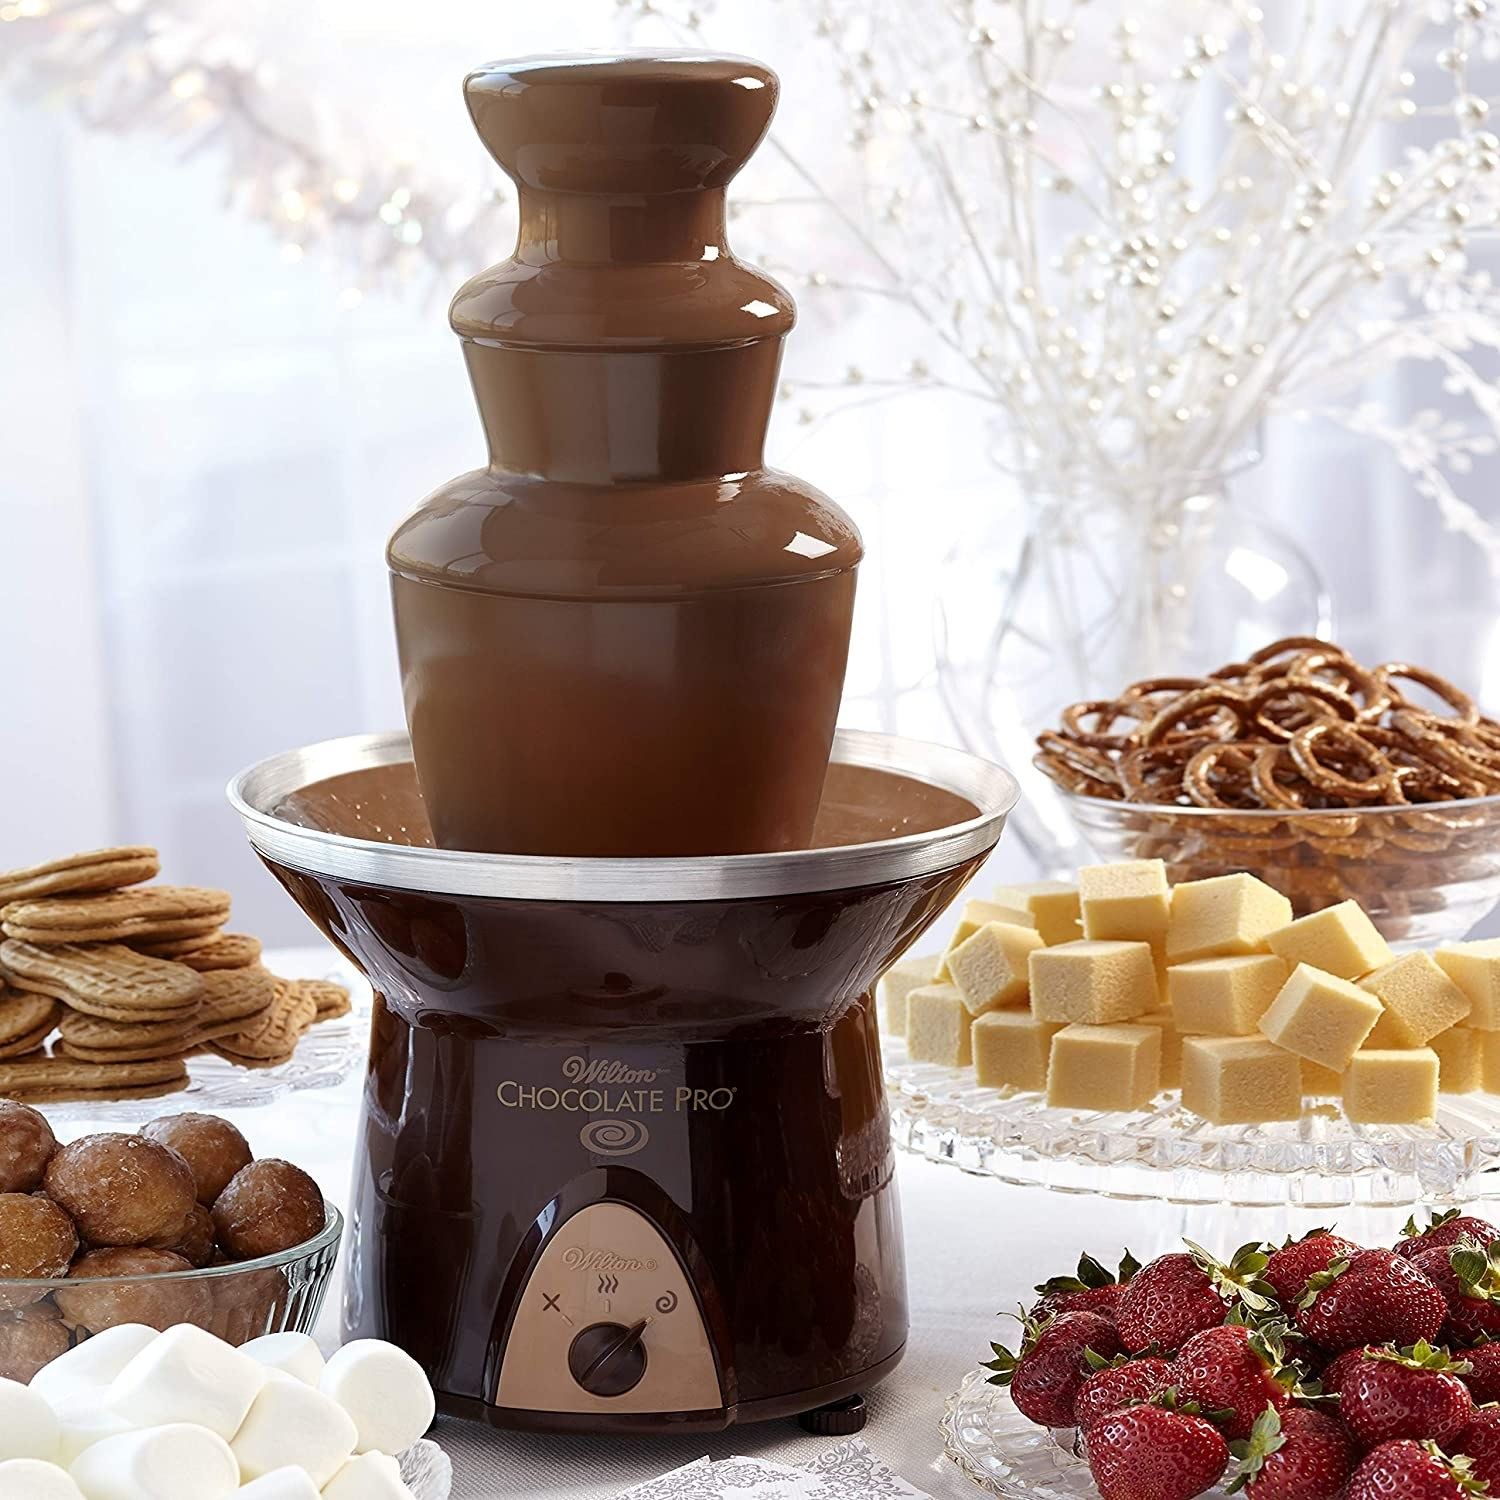 The chocolate fountain in use, standing among treats for dipping